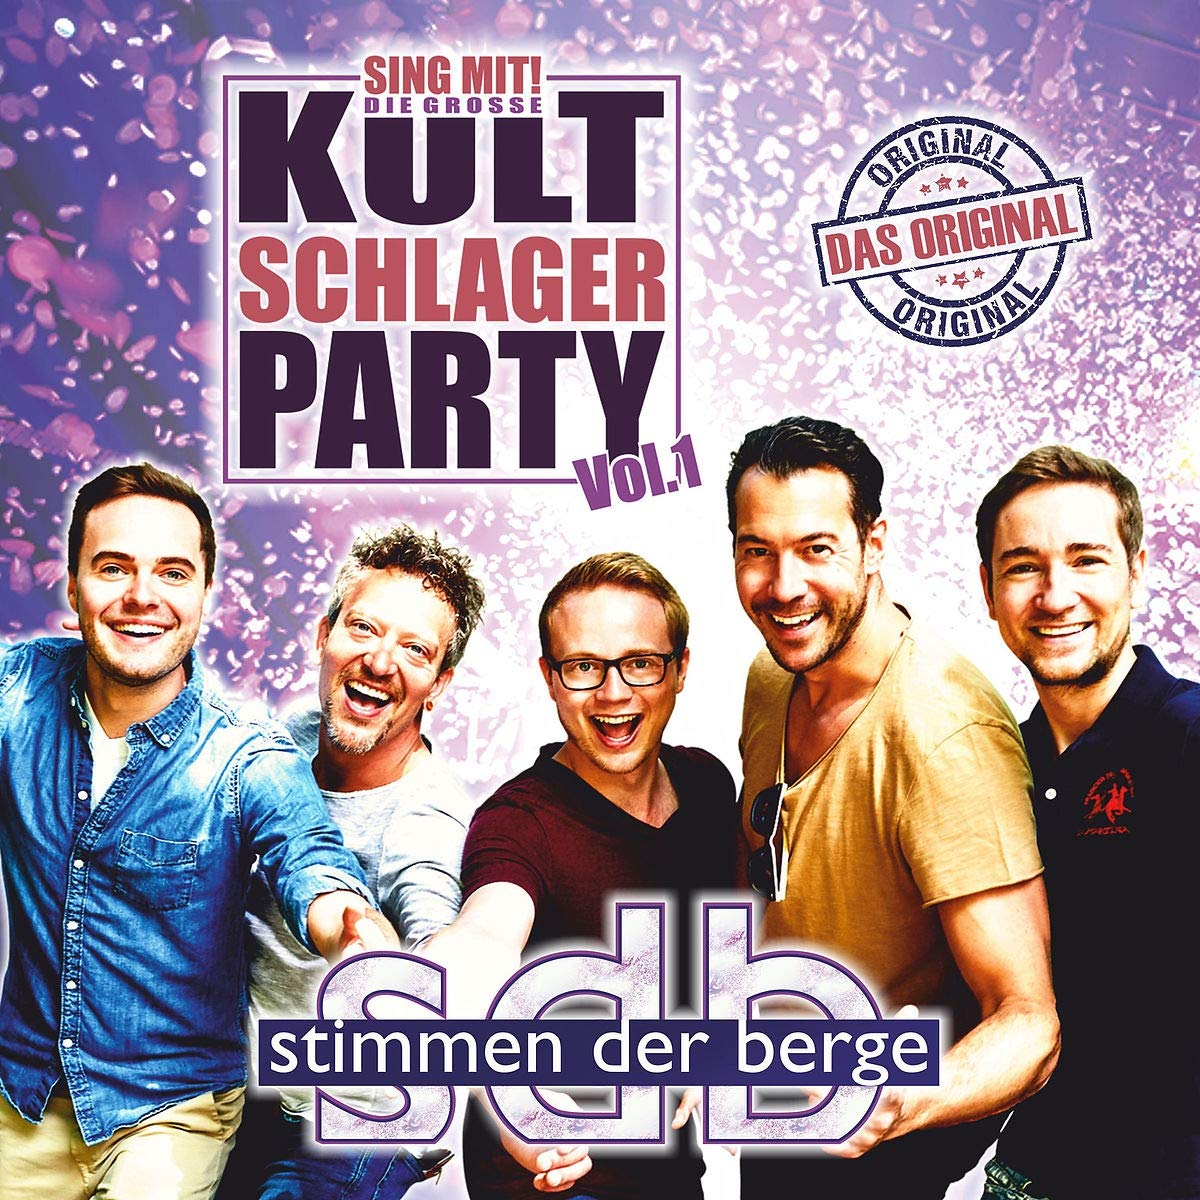 STIMMEN DER BERGE * Sing mit! Die große Kultschlager Party – Vol. 1 (CD)